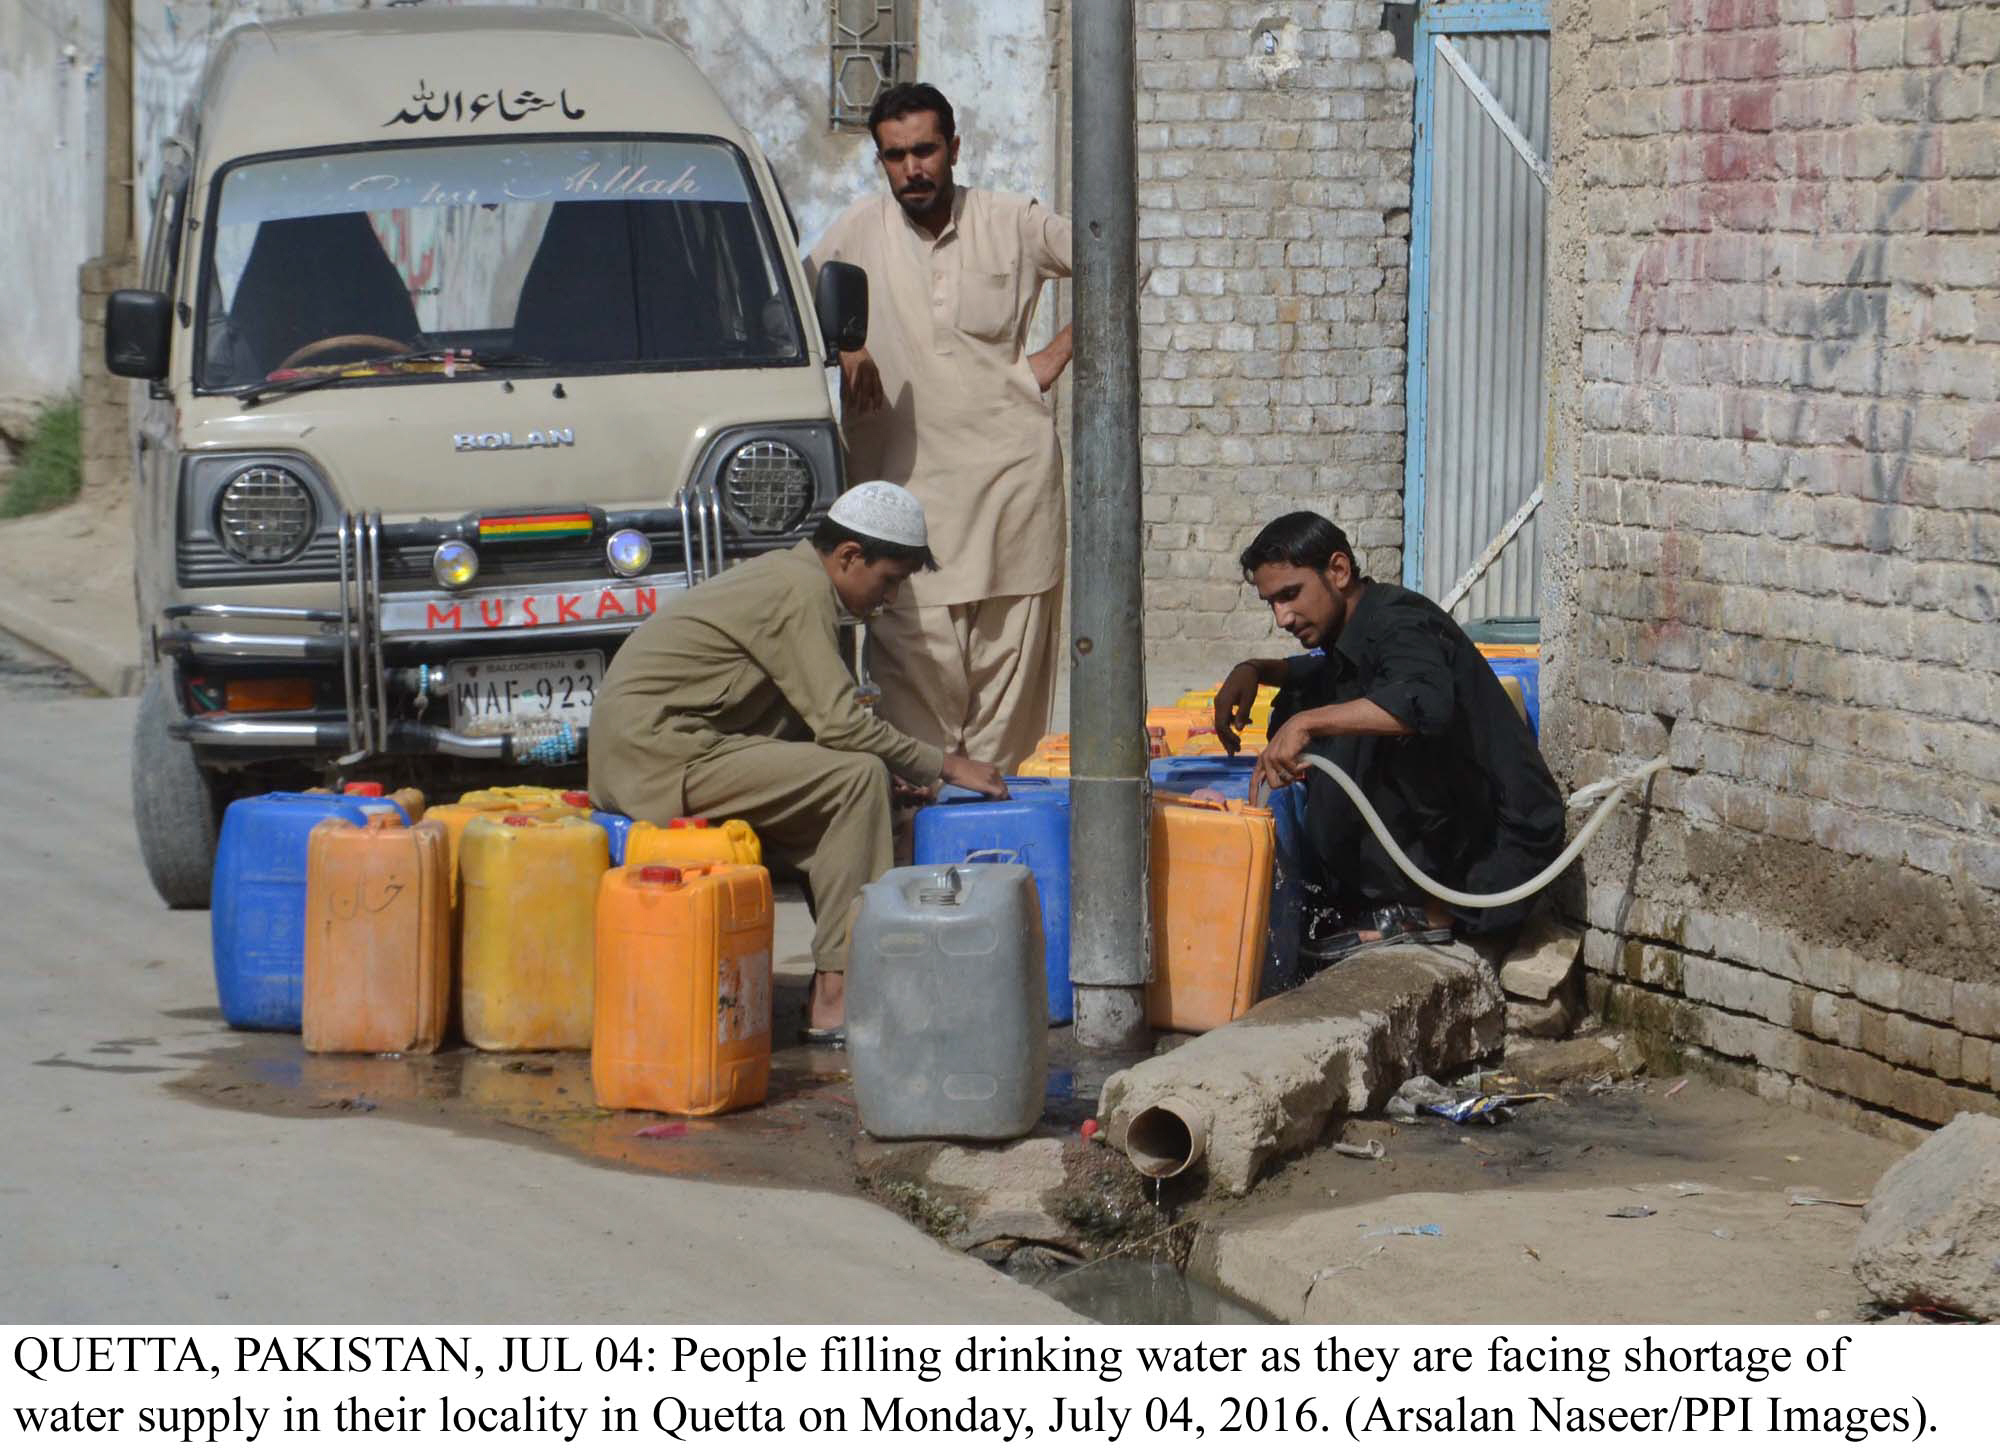 most water sources in islamabad unsafe says report